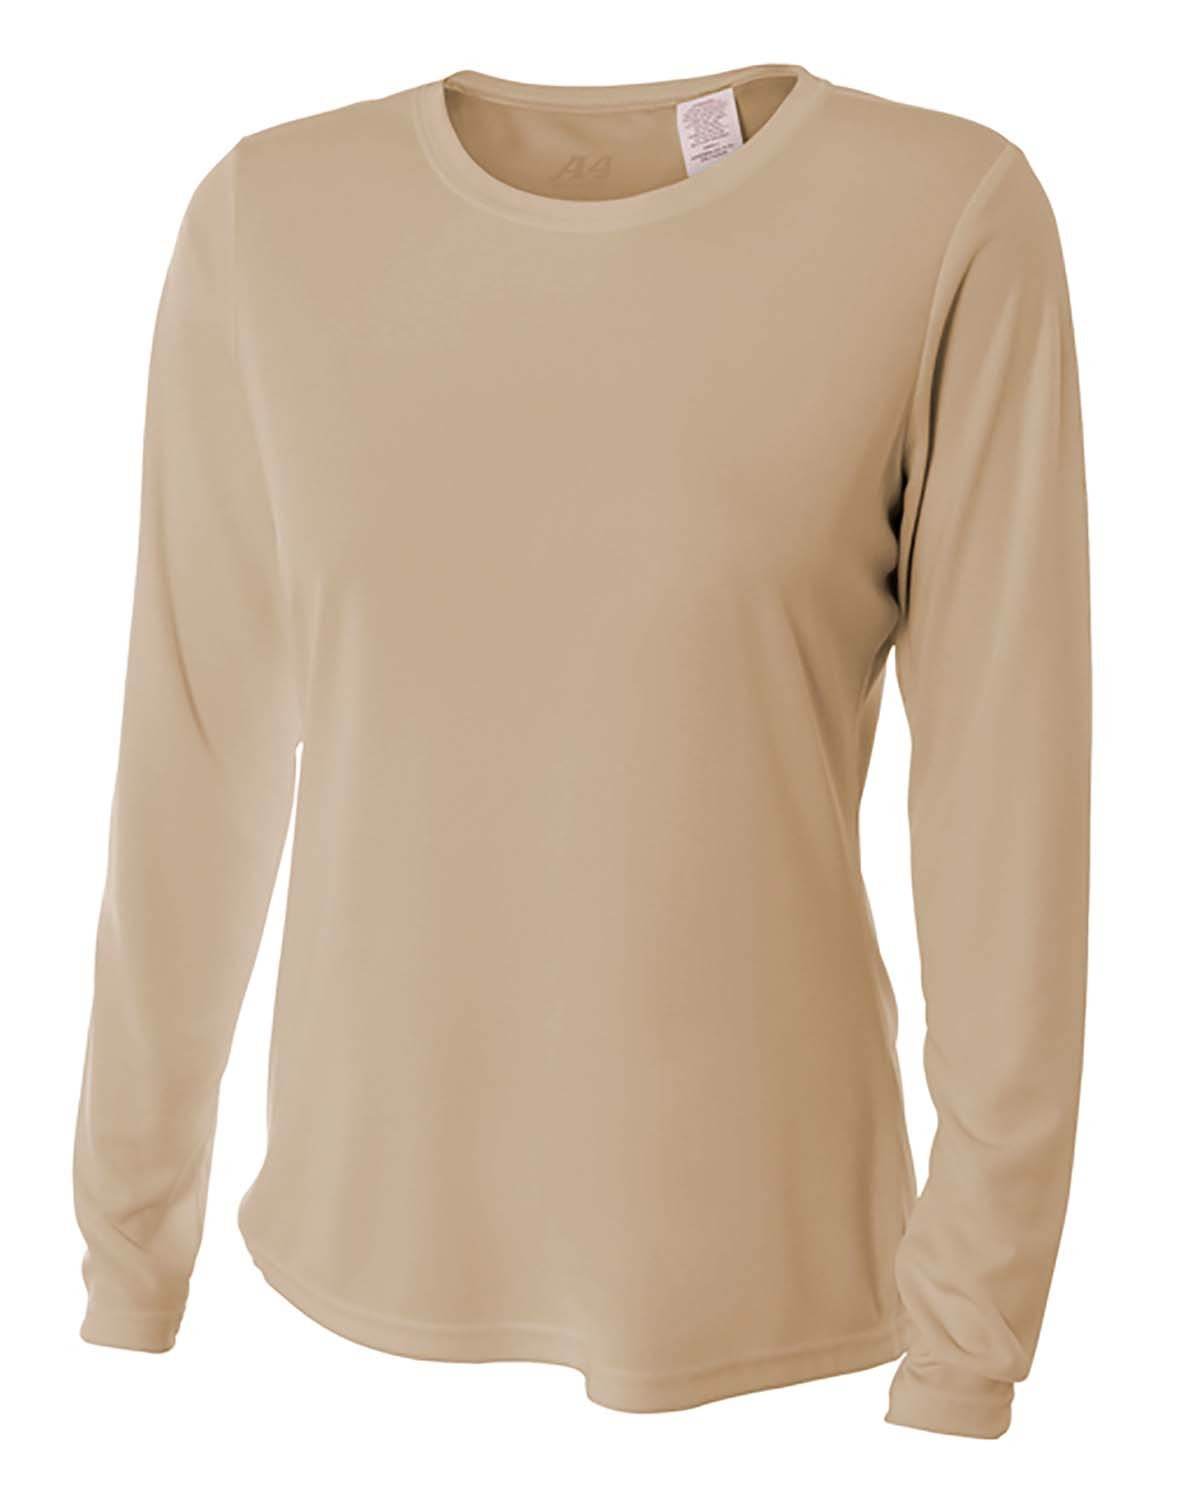 A4 Ladies' Long Sleeve Cooling Performance Crew Shirt SAND